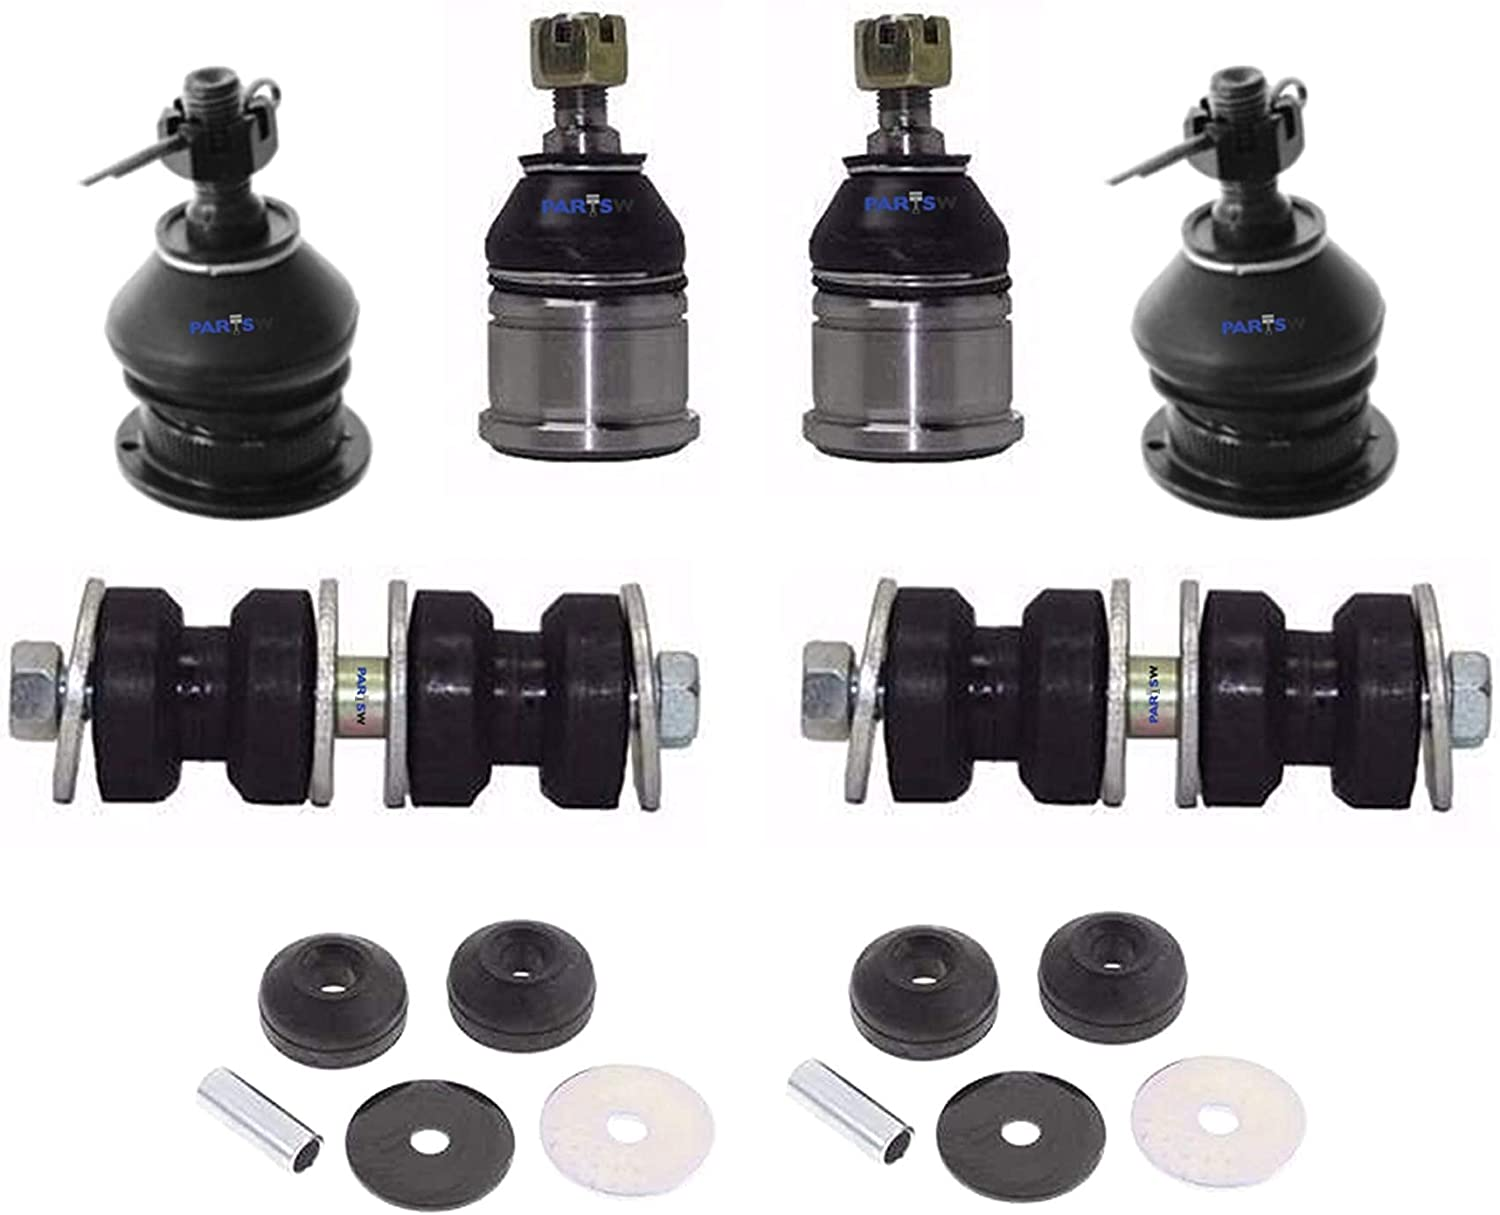 Front Upper /& Lower Ball Joints PartsW 8 Pc Suspension Kit for Honda Accord /& Isuzu Oasis//Front Upper Shock Mount Bushing Front Sway Bar End Link